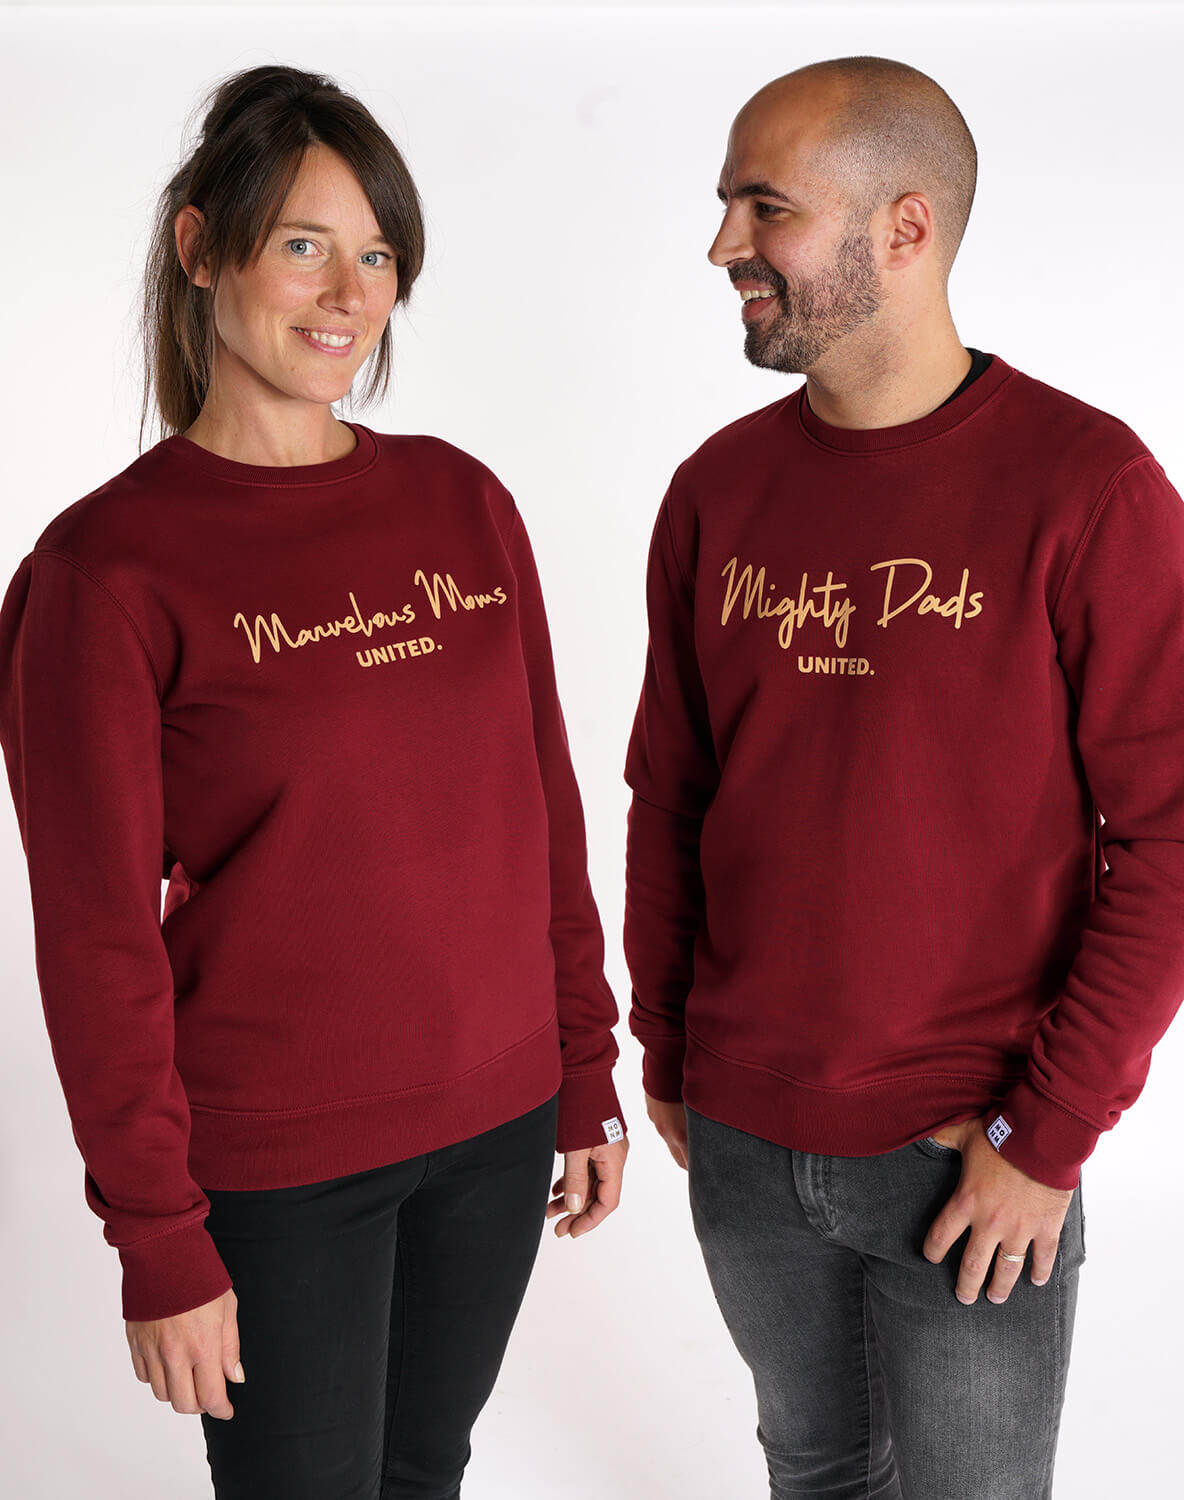 Marvelous moms united & Mighty Dads united sweater van Mangos on Monday